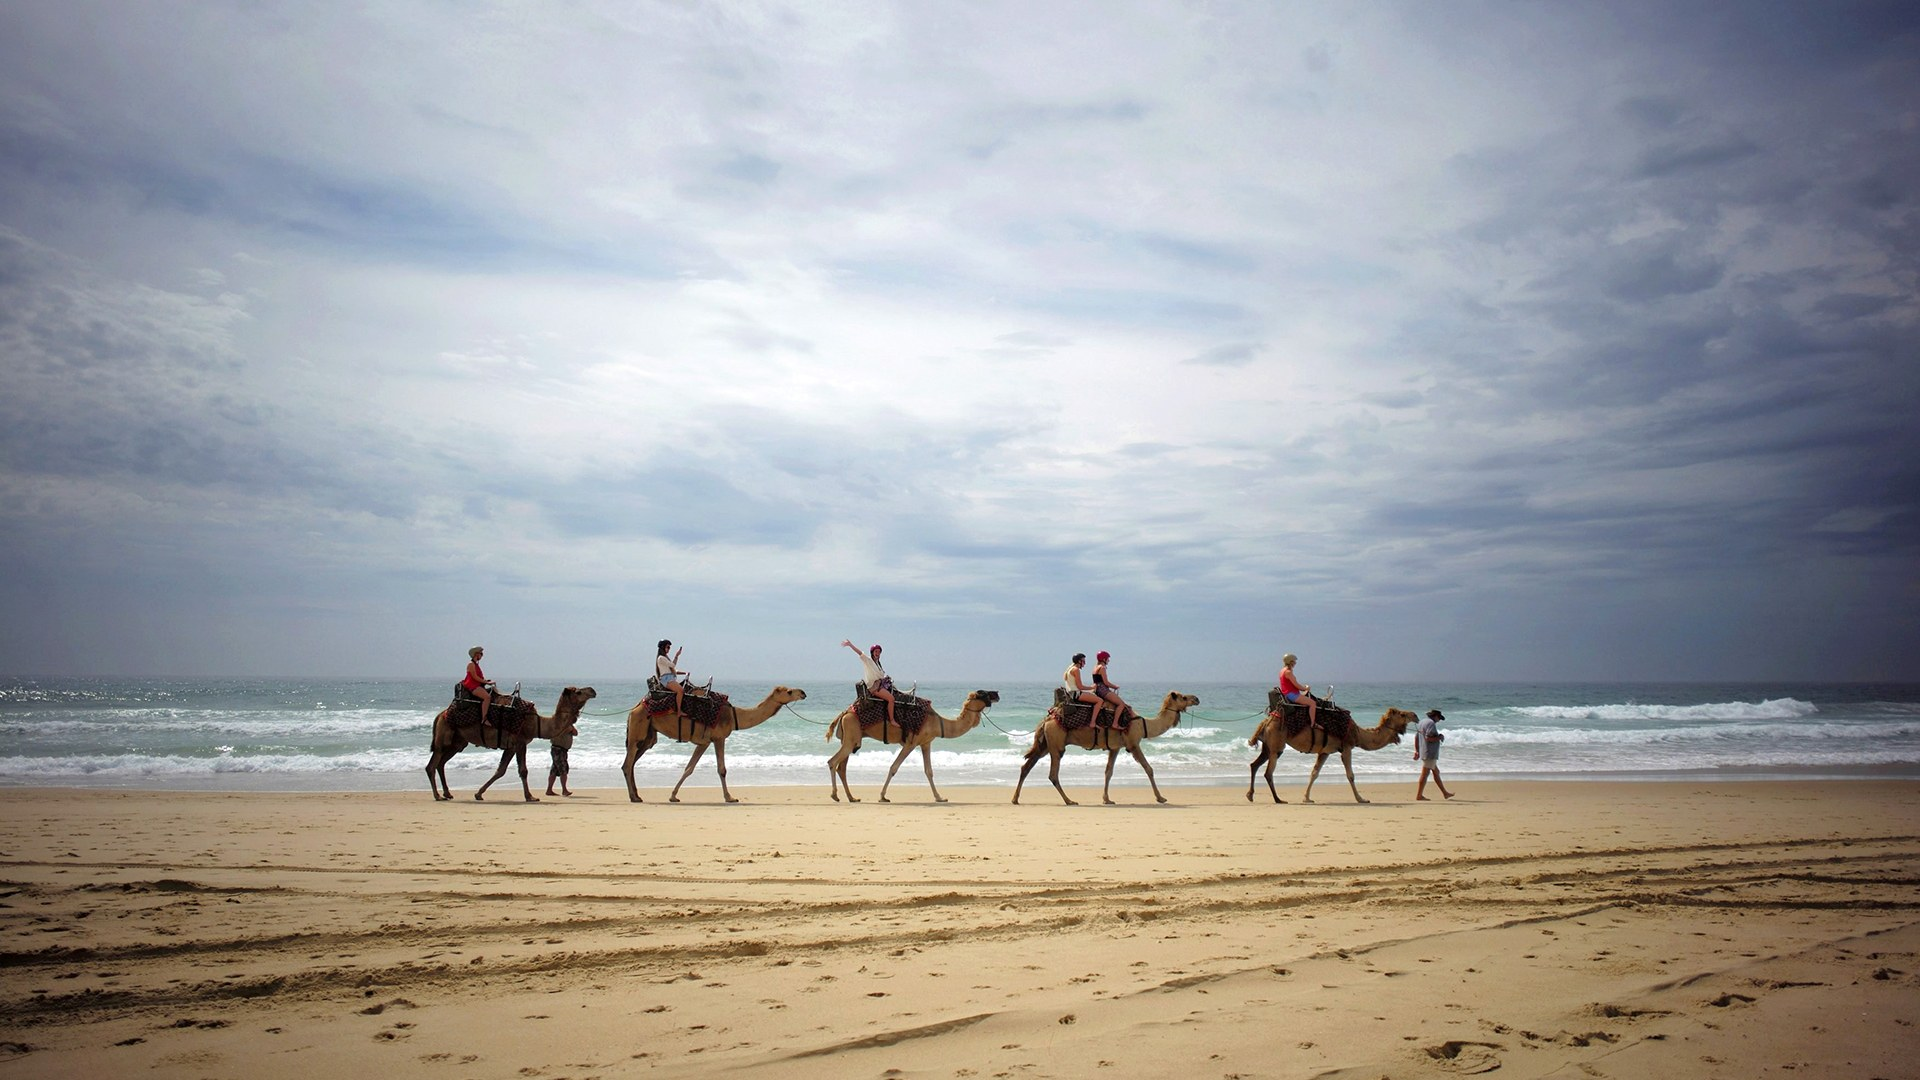 Image: Tourists ride on camels belonging to Port Macquarie Camel Safaris alongside the Pacific Ocean on Lighthouse Beach